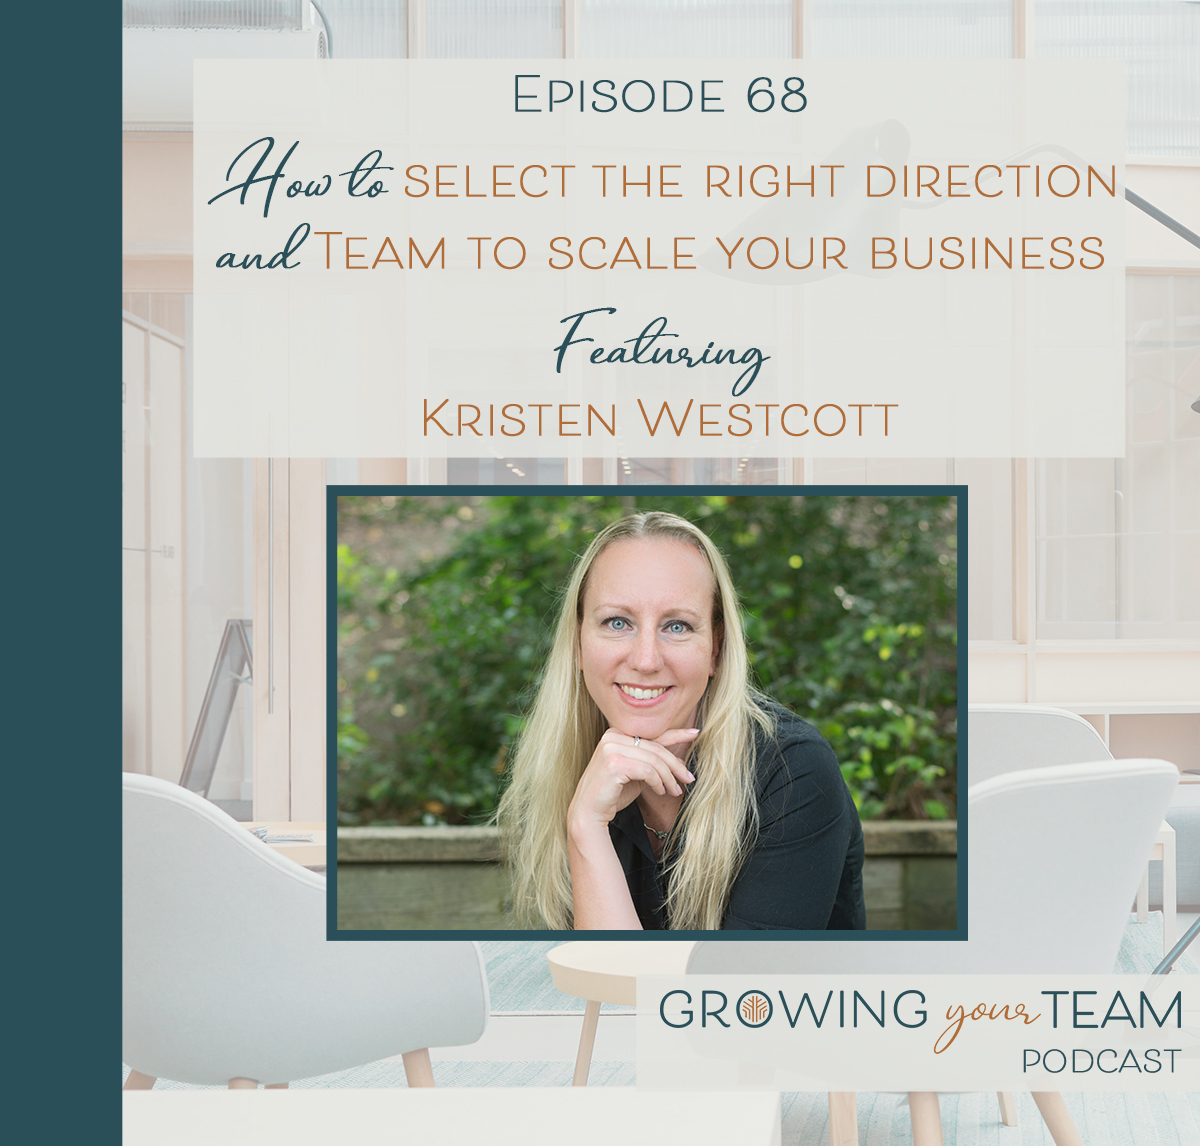 Growing Your Team Podcast